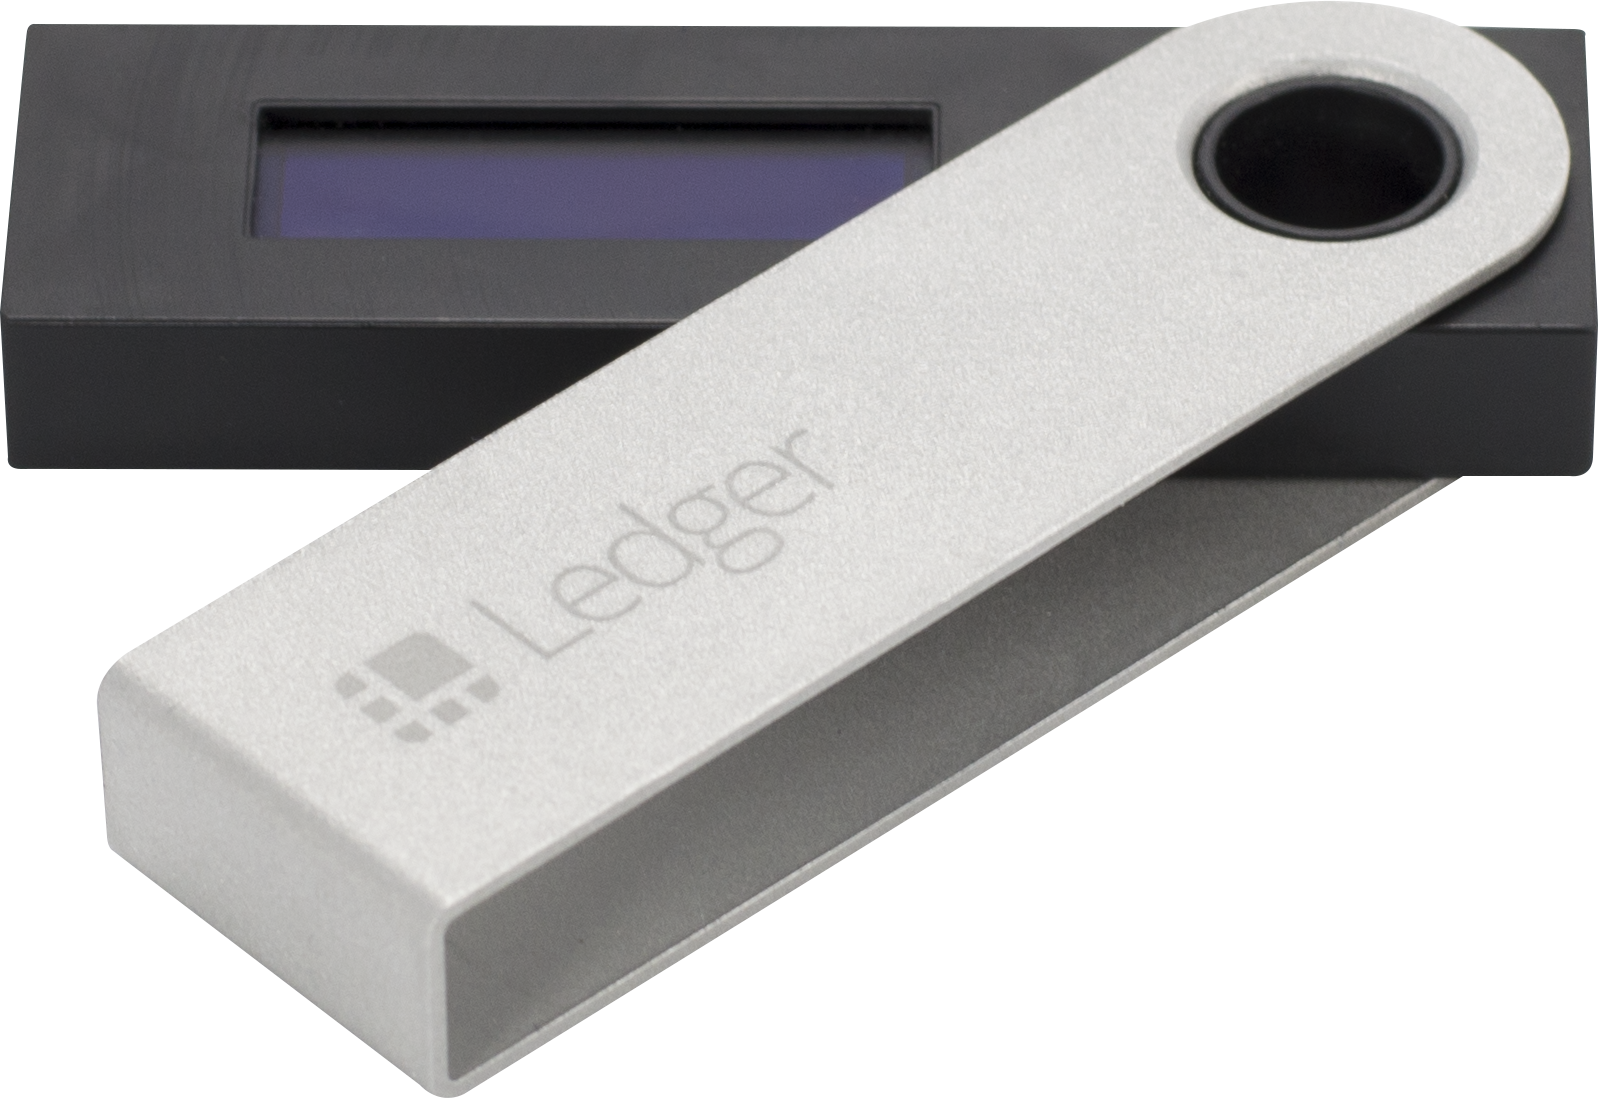 how to get bitcoin gold from ledger